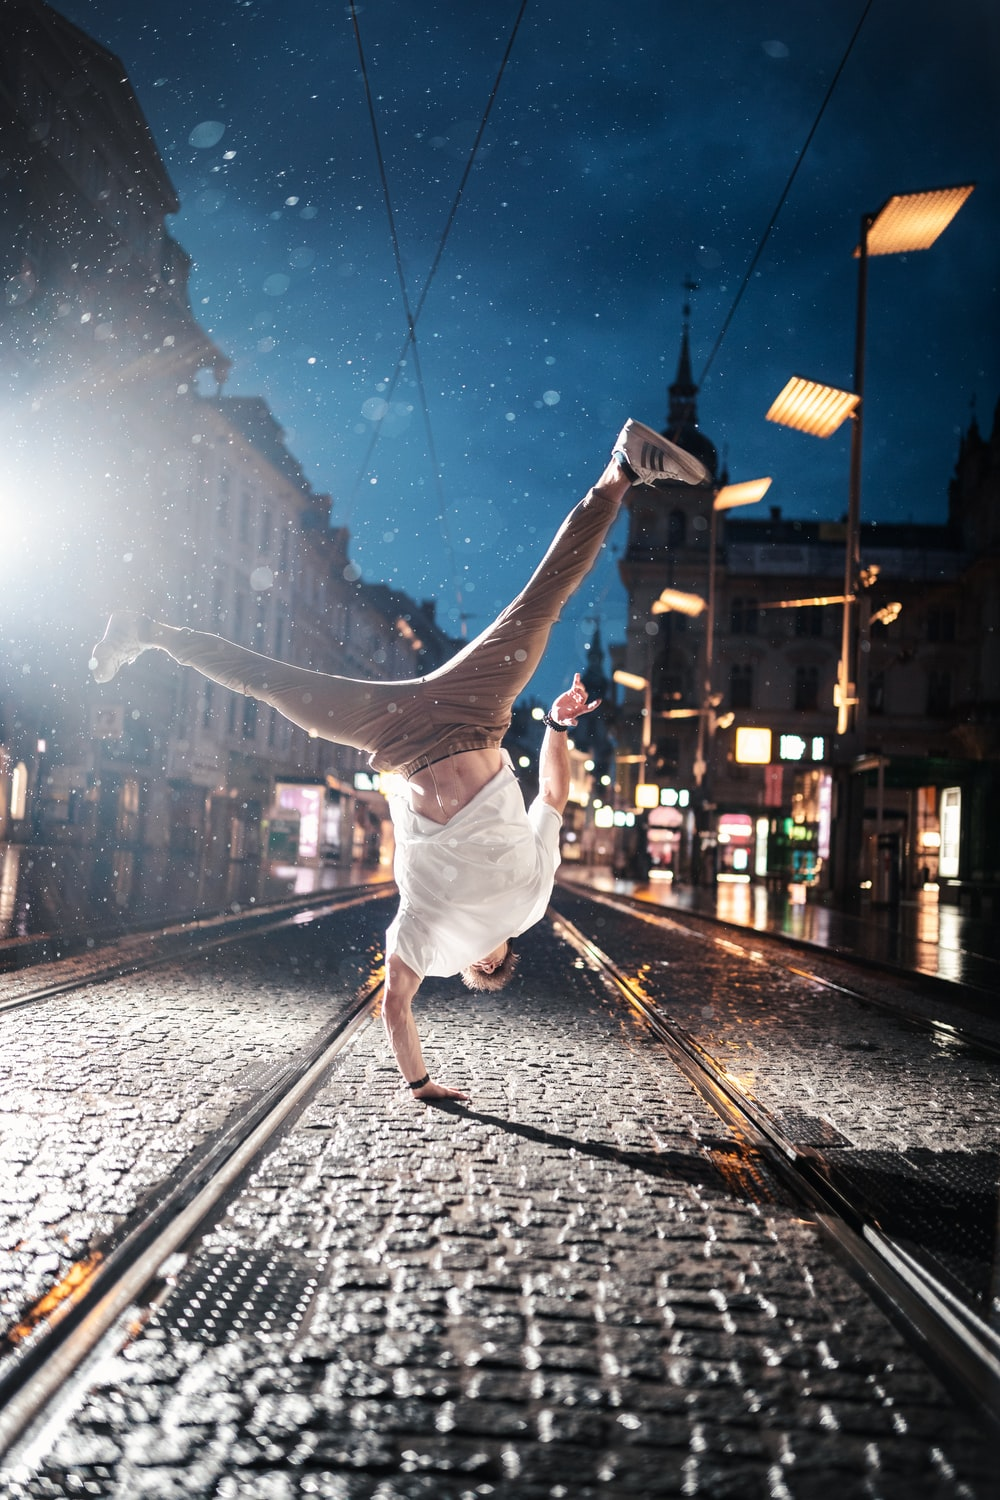 woman in white dress jumping on train rail during night time